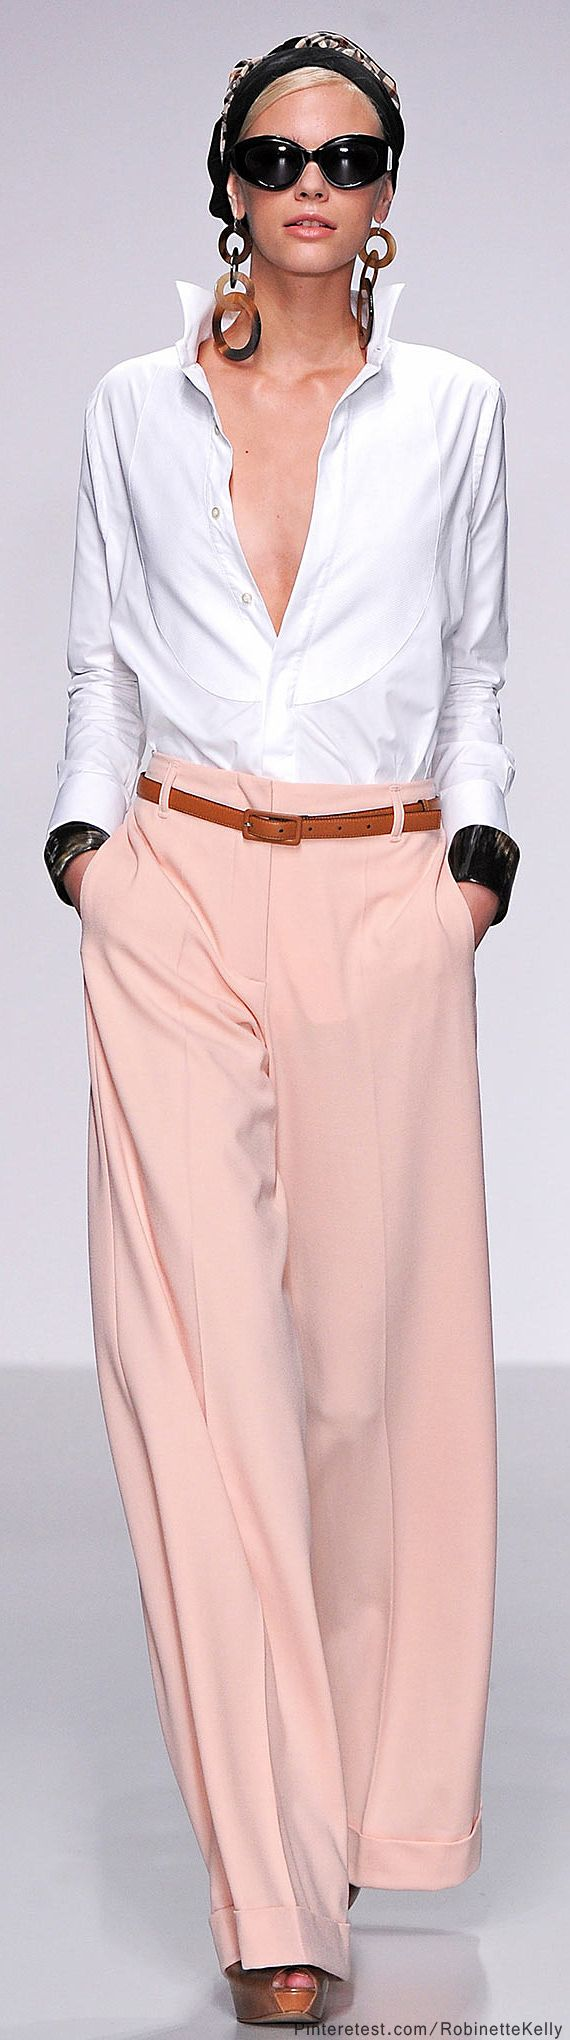 A great way to wear your pink wide pants | For more info on how to wear wide pants and where to buy them visit http://40plusstyle.com/wide-legged-pants-how-to-wear-them-and-where-to-buy/